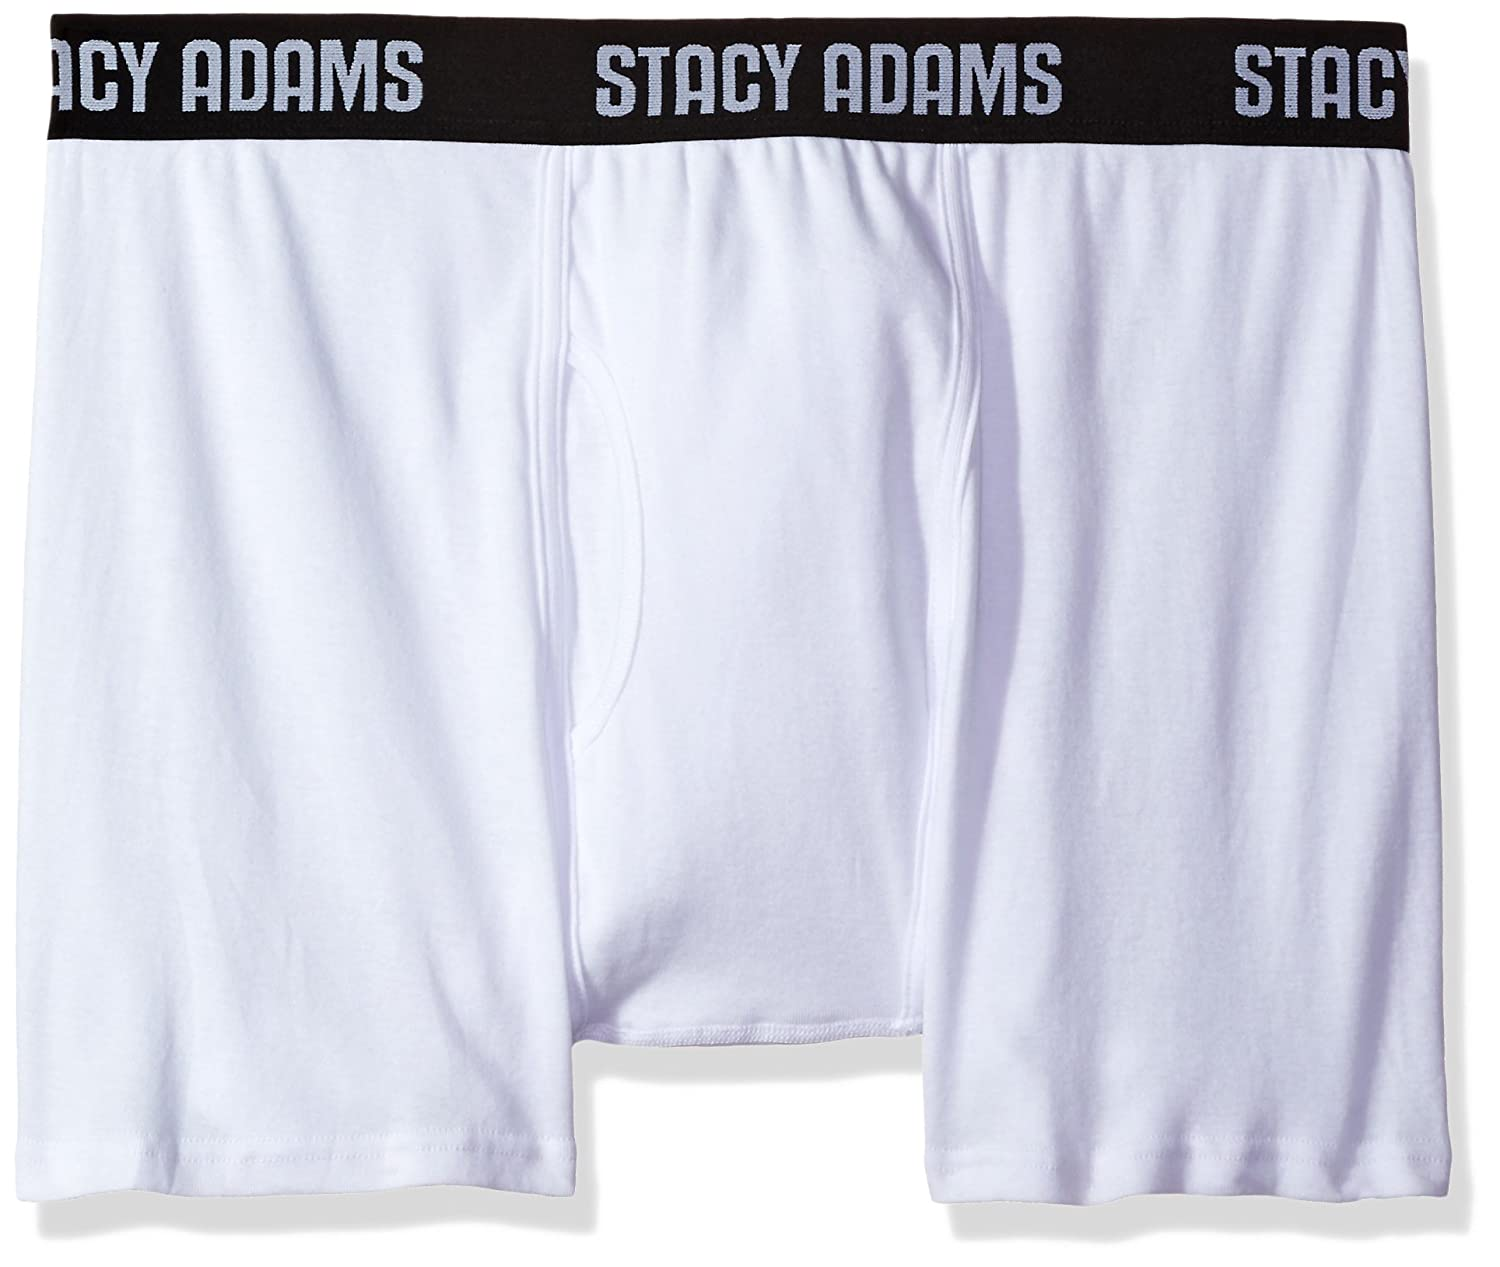 STACY ADAMS Men's Tall 4pack Cotton Boxer Brief, Big Sizes Black XX-Large SA4001BT